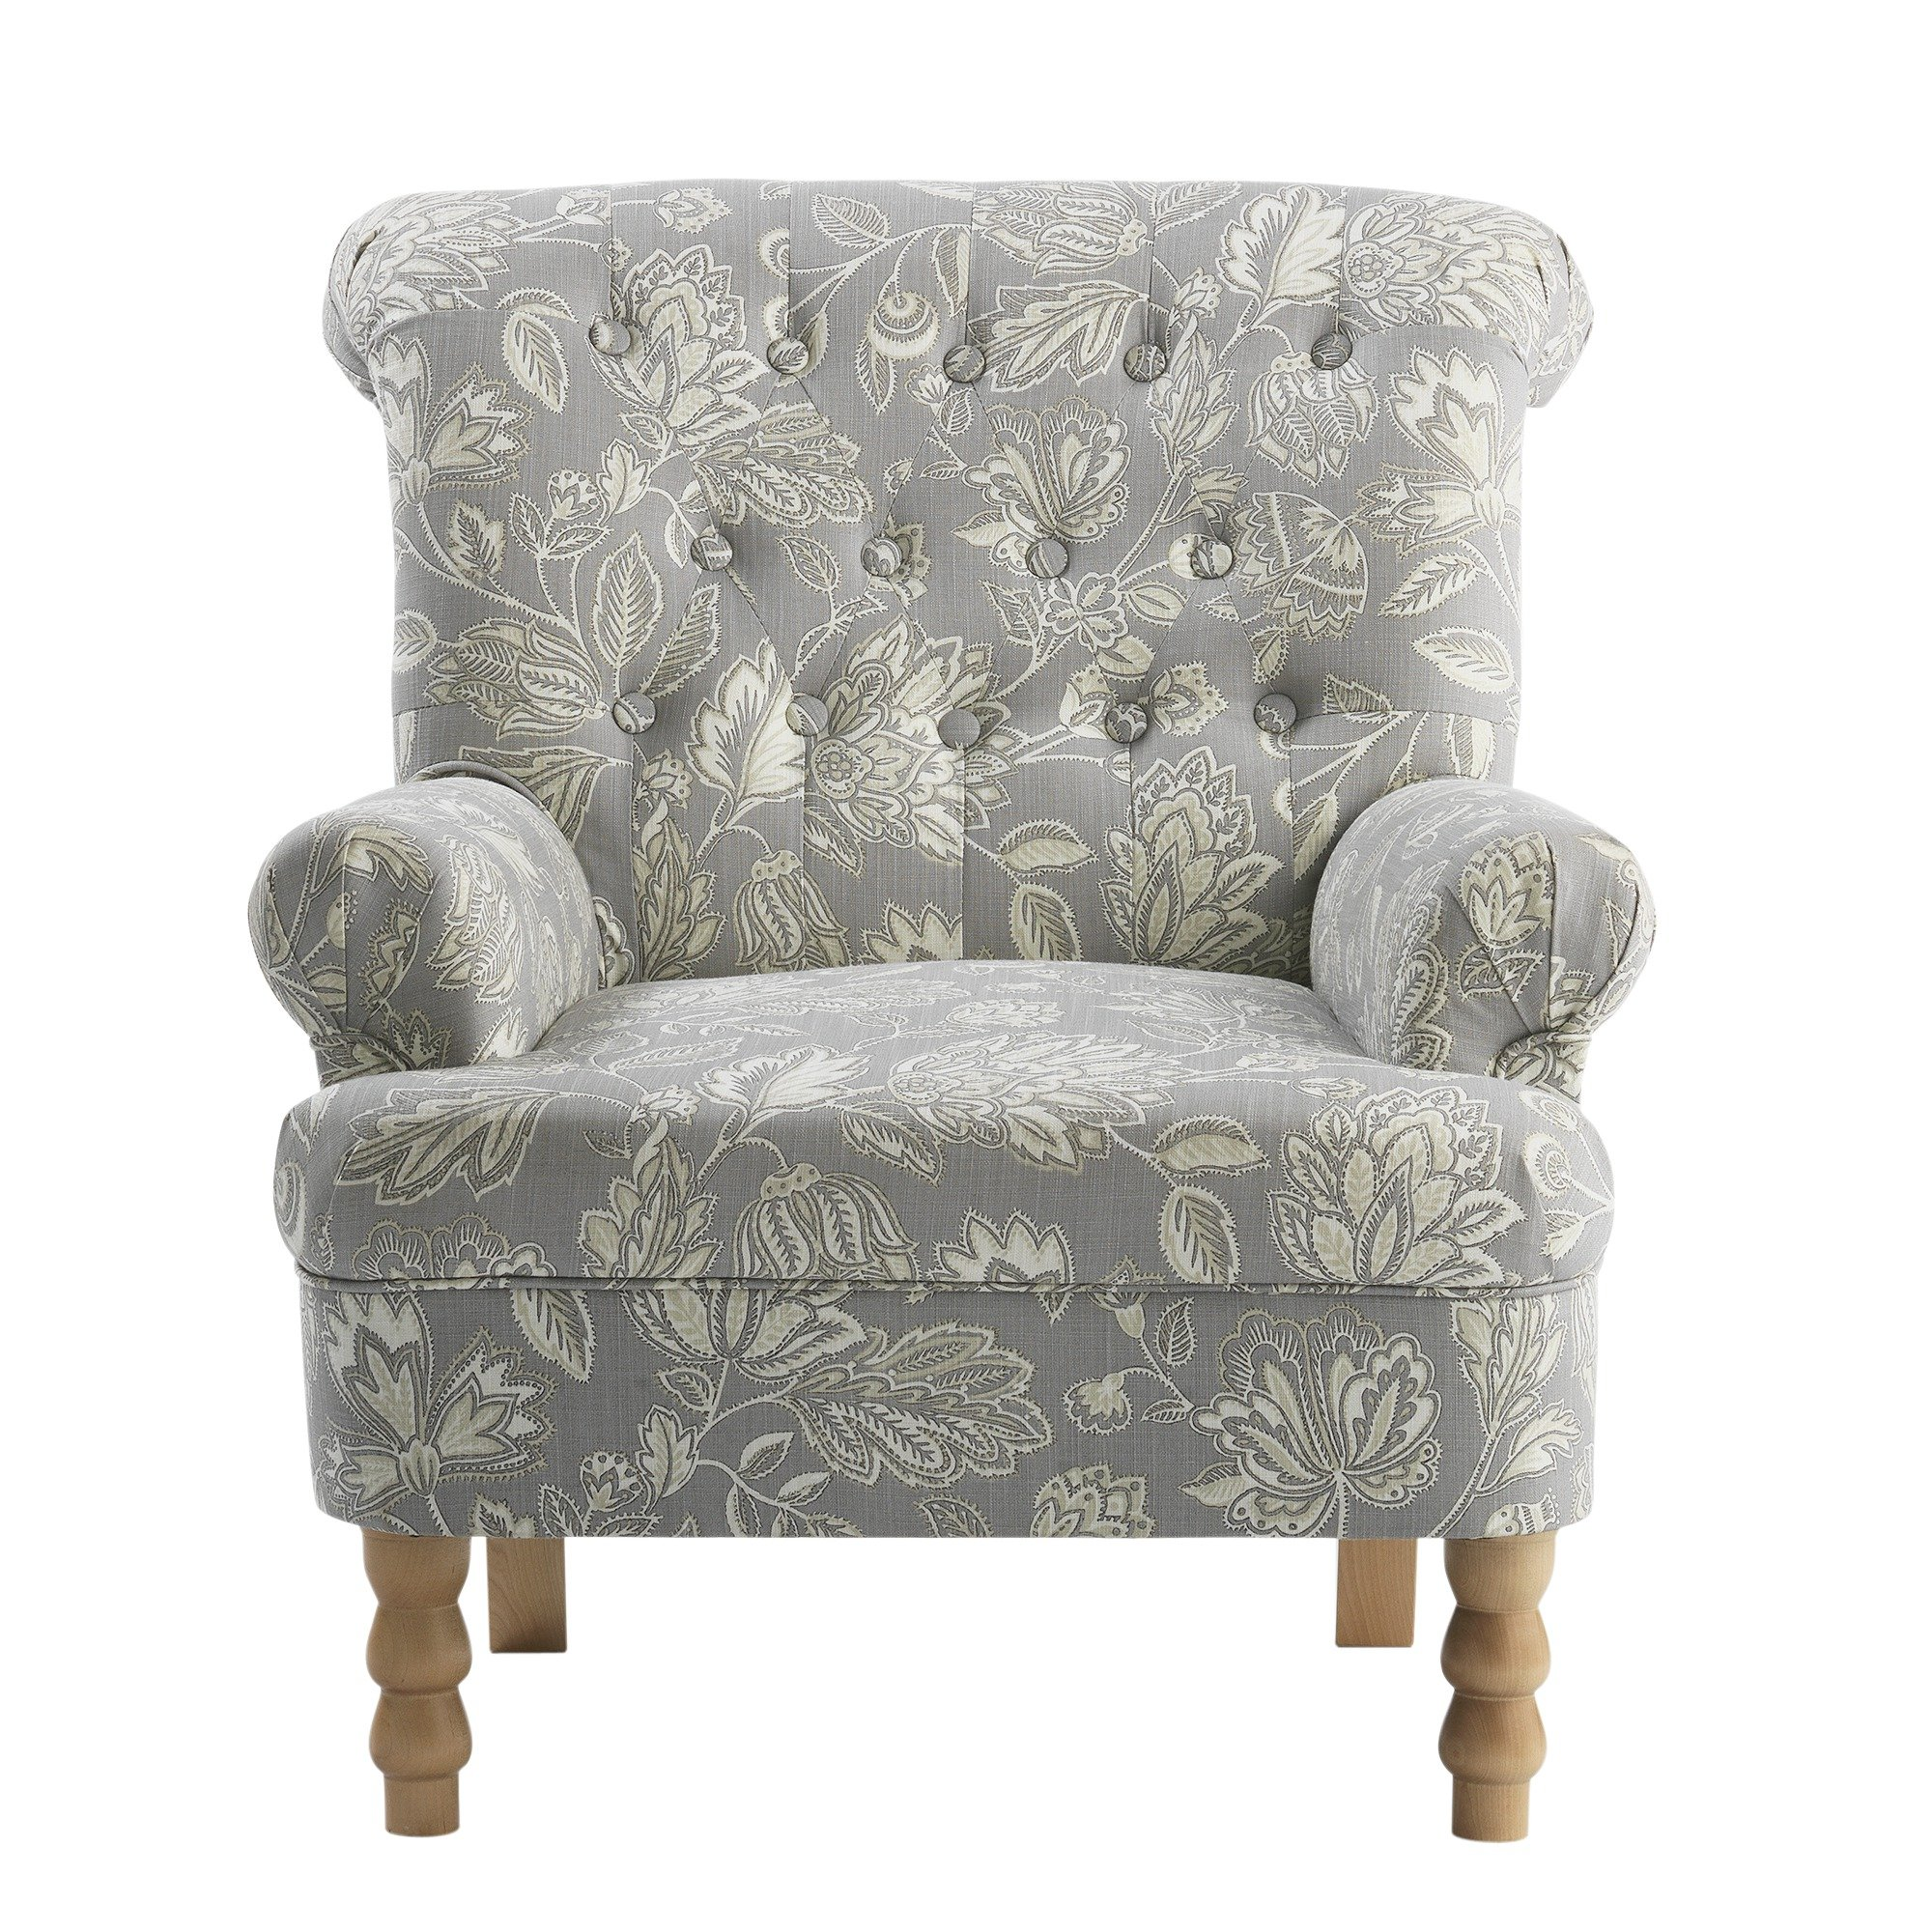 Heart of House - Darcy - Fabric Chair - Floral